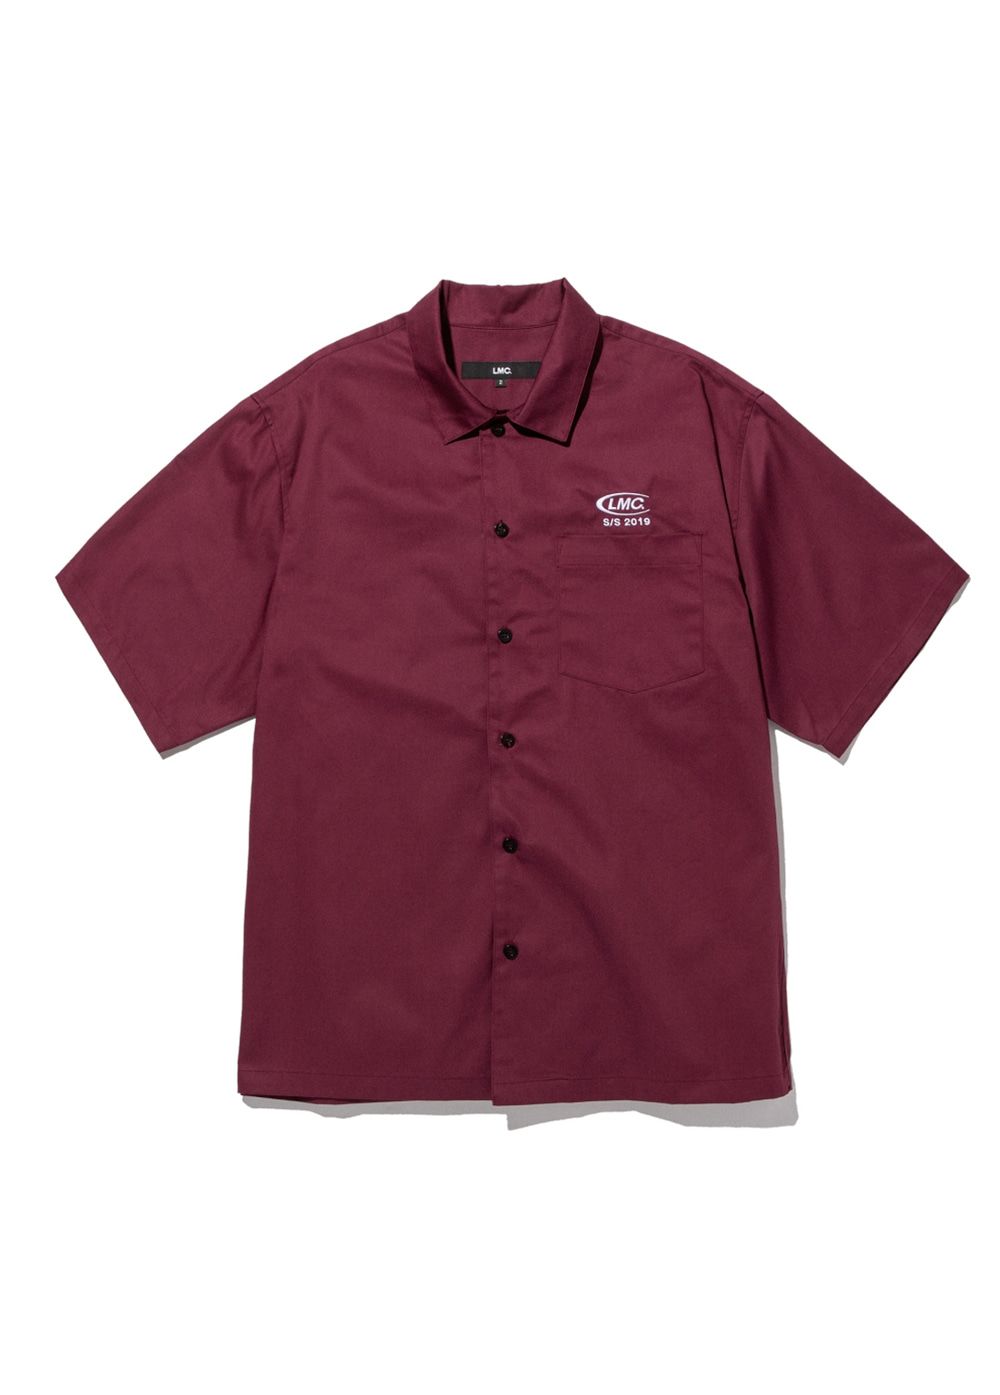 LMC CO SHORT SLV SHIRT burgundy